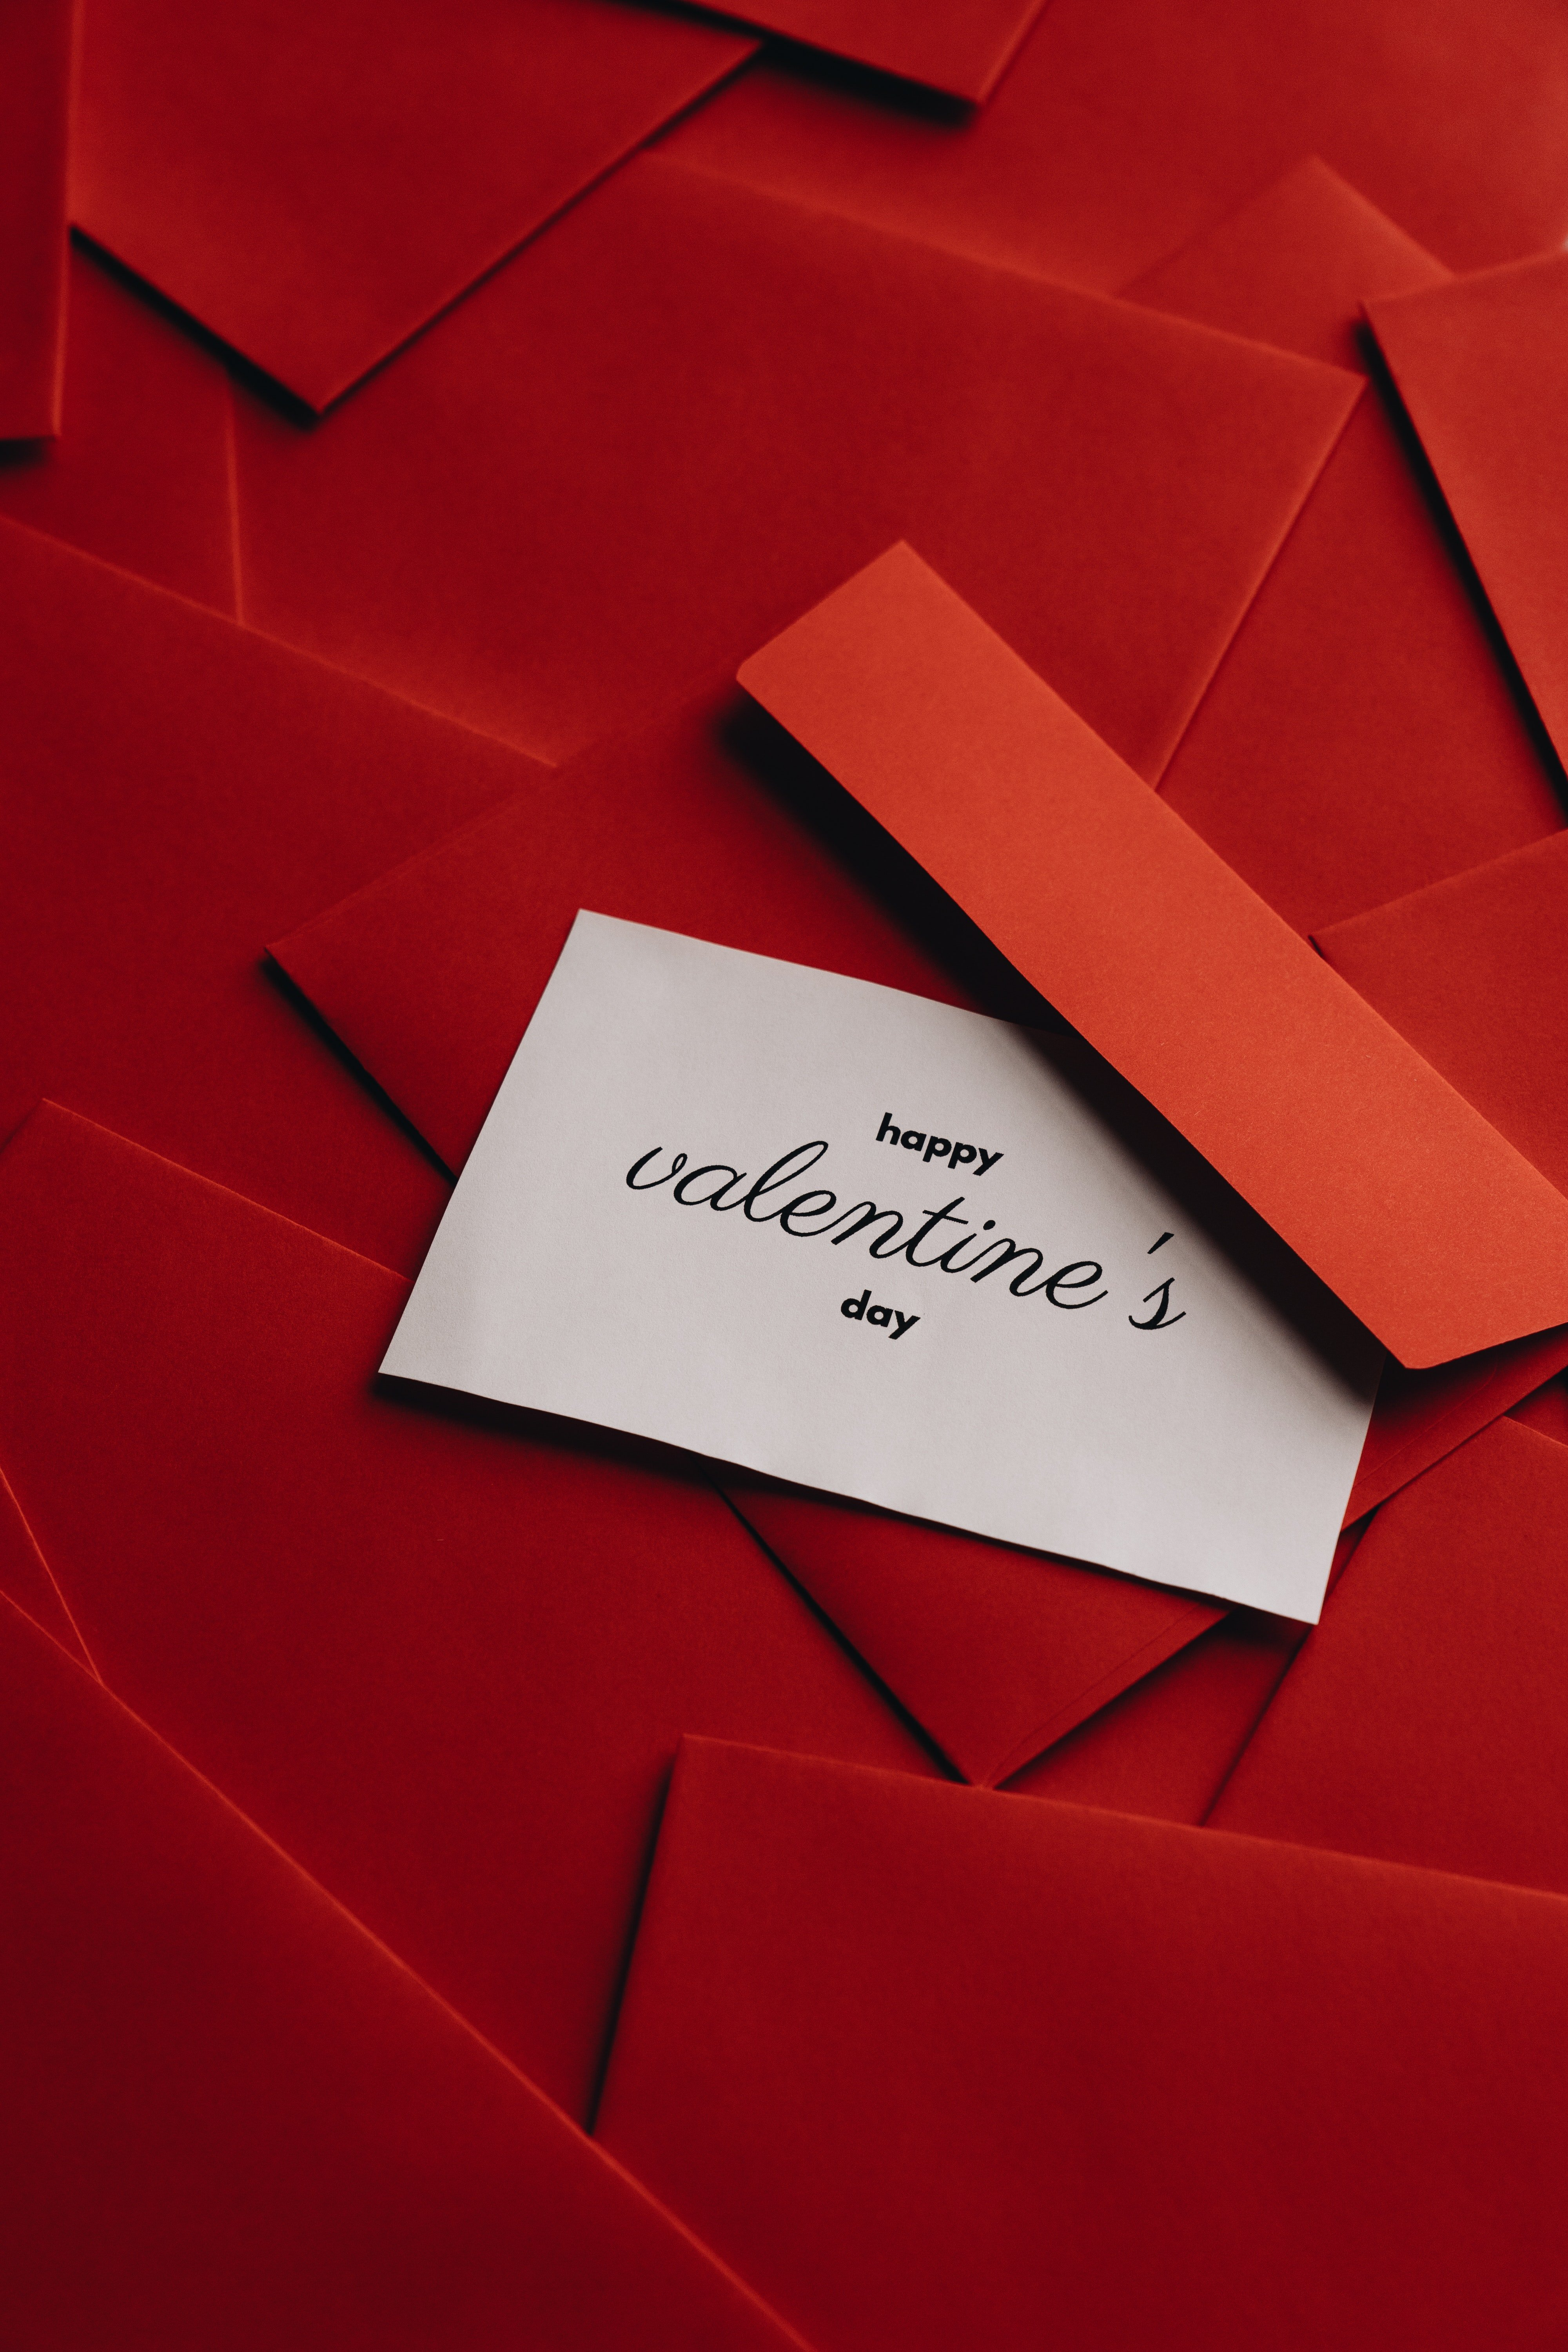 A white Valentine's note ontop of red envelopes.   Photo: Pexels.